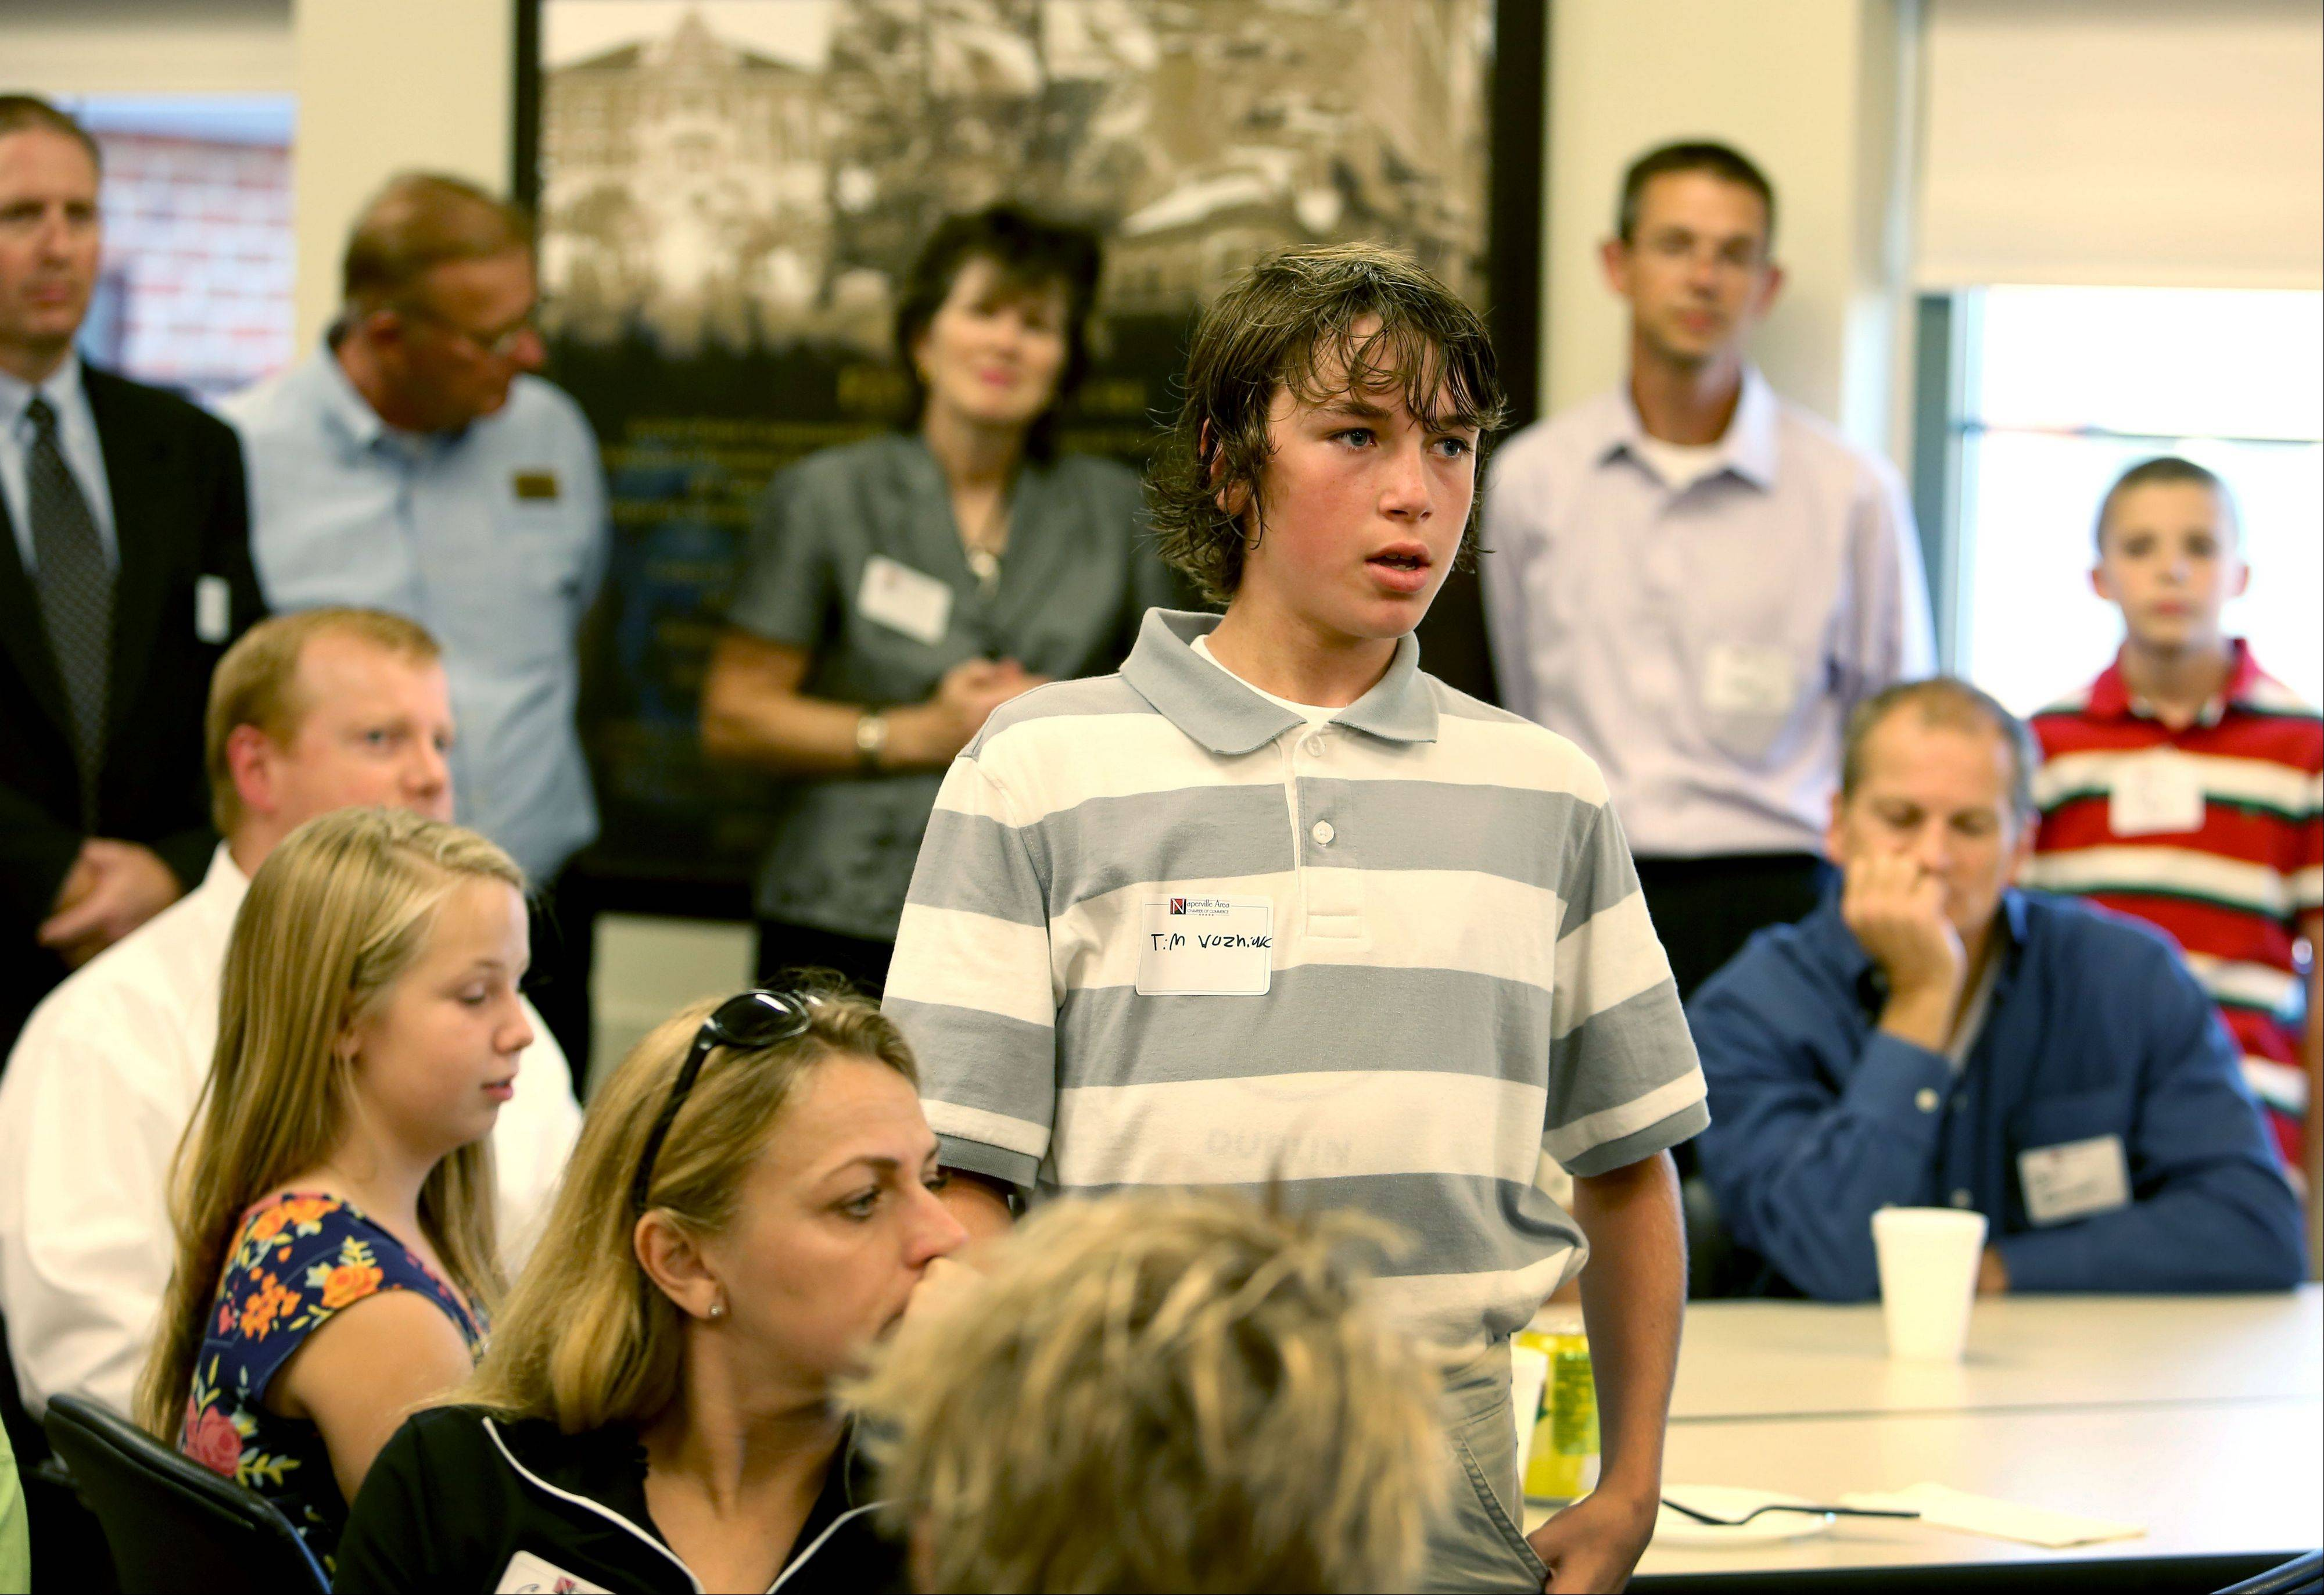 Tim Wozniak, an eighth-grader at Jefferson Junior High School in Naperville, introduces his business idea -- a gym offering fitness through obstacle courses and dodgeball -- during a meet and greet the Naperville Area Chamber of Commerce sponsored for participants in its first class of the Young Entrepreneurs Academy.